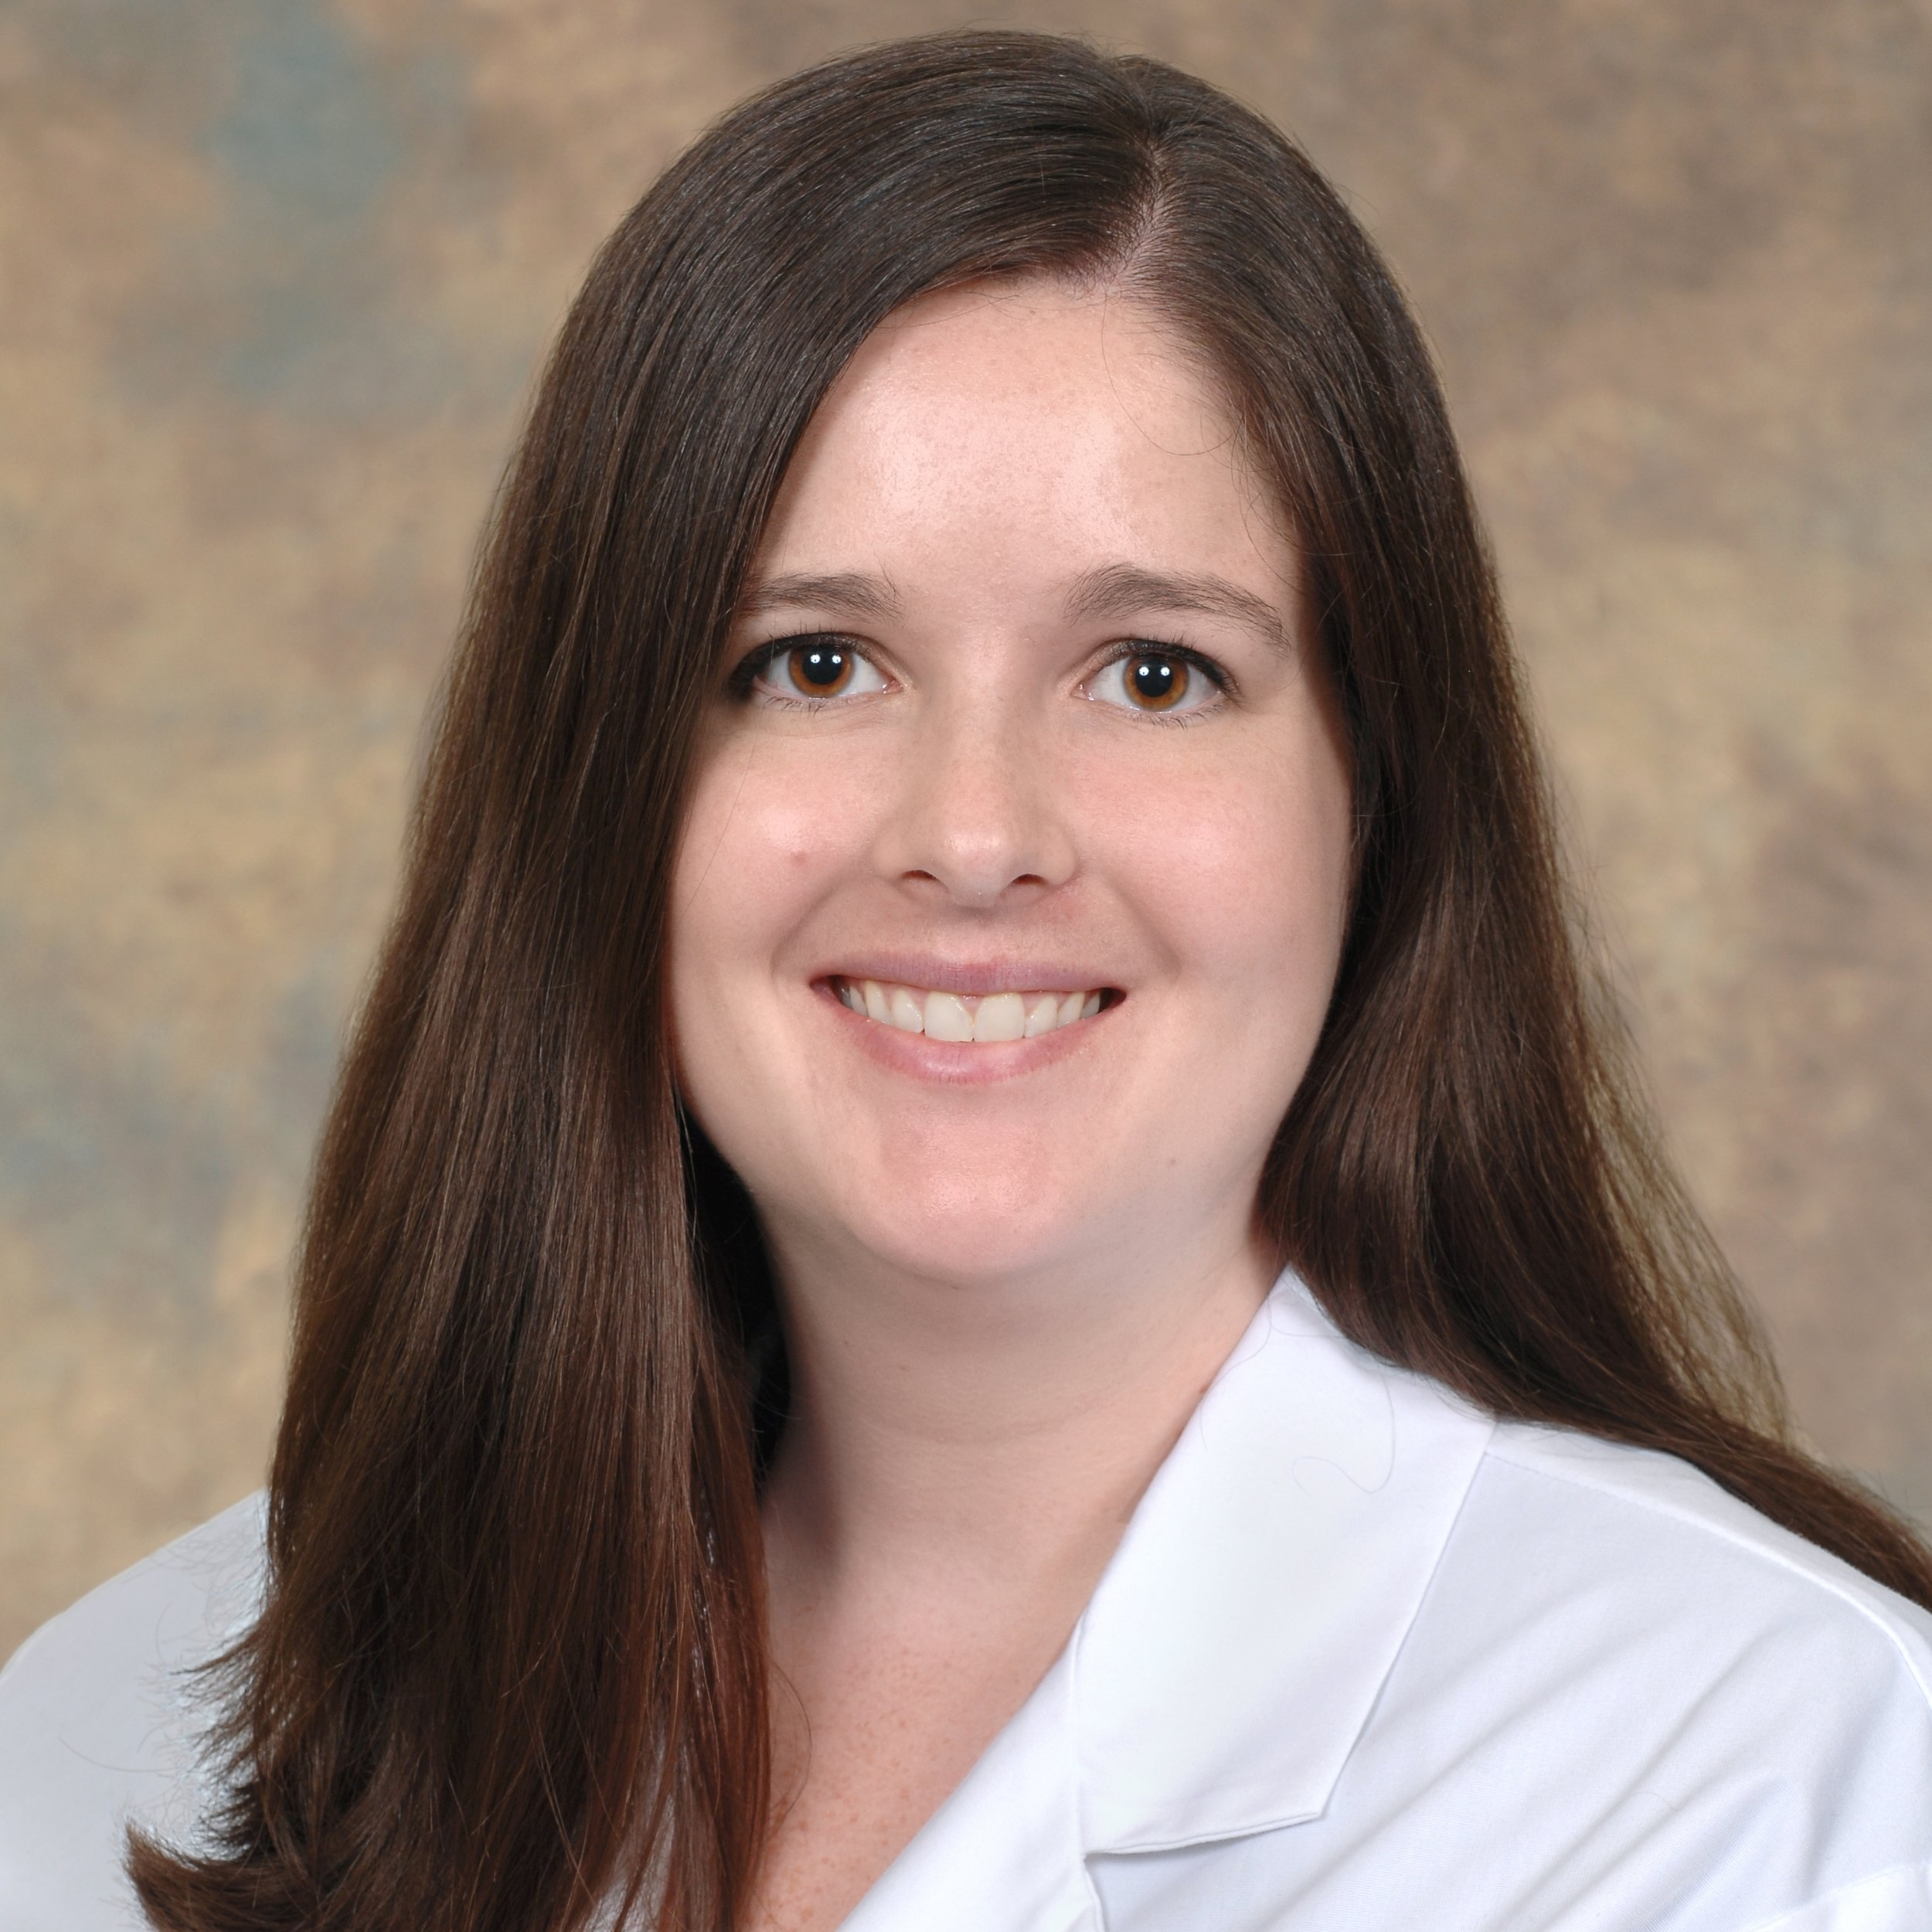 Katherine Johnson  - U of Cincinnati  Class of 2017  Katie stayed within TCH system working in an outpatient office providing comprehensive care- including seeing maternity patients.